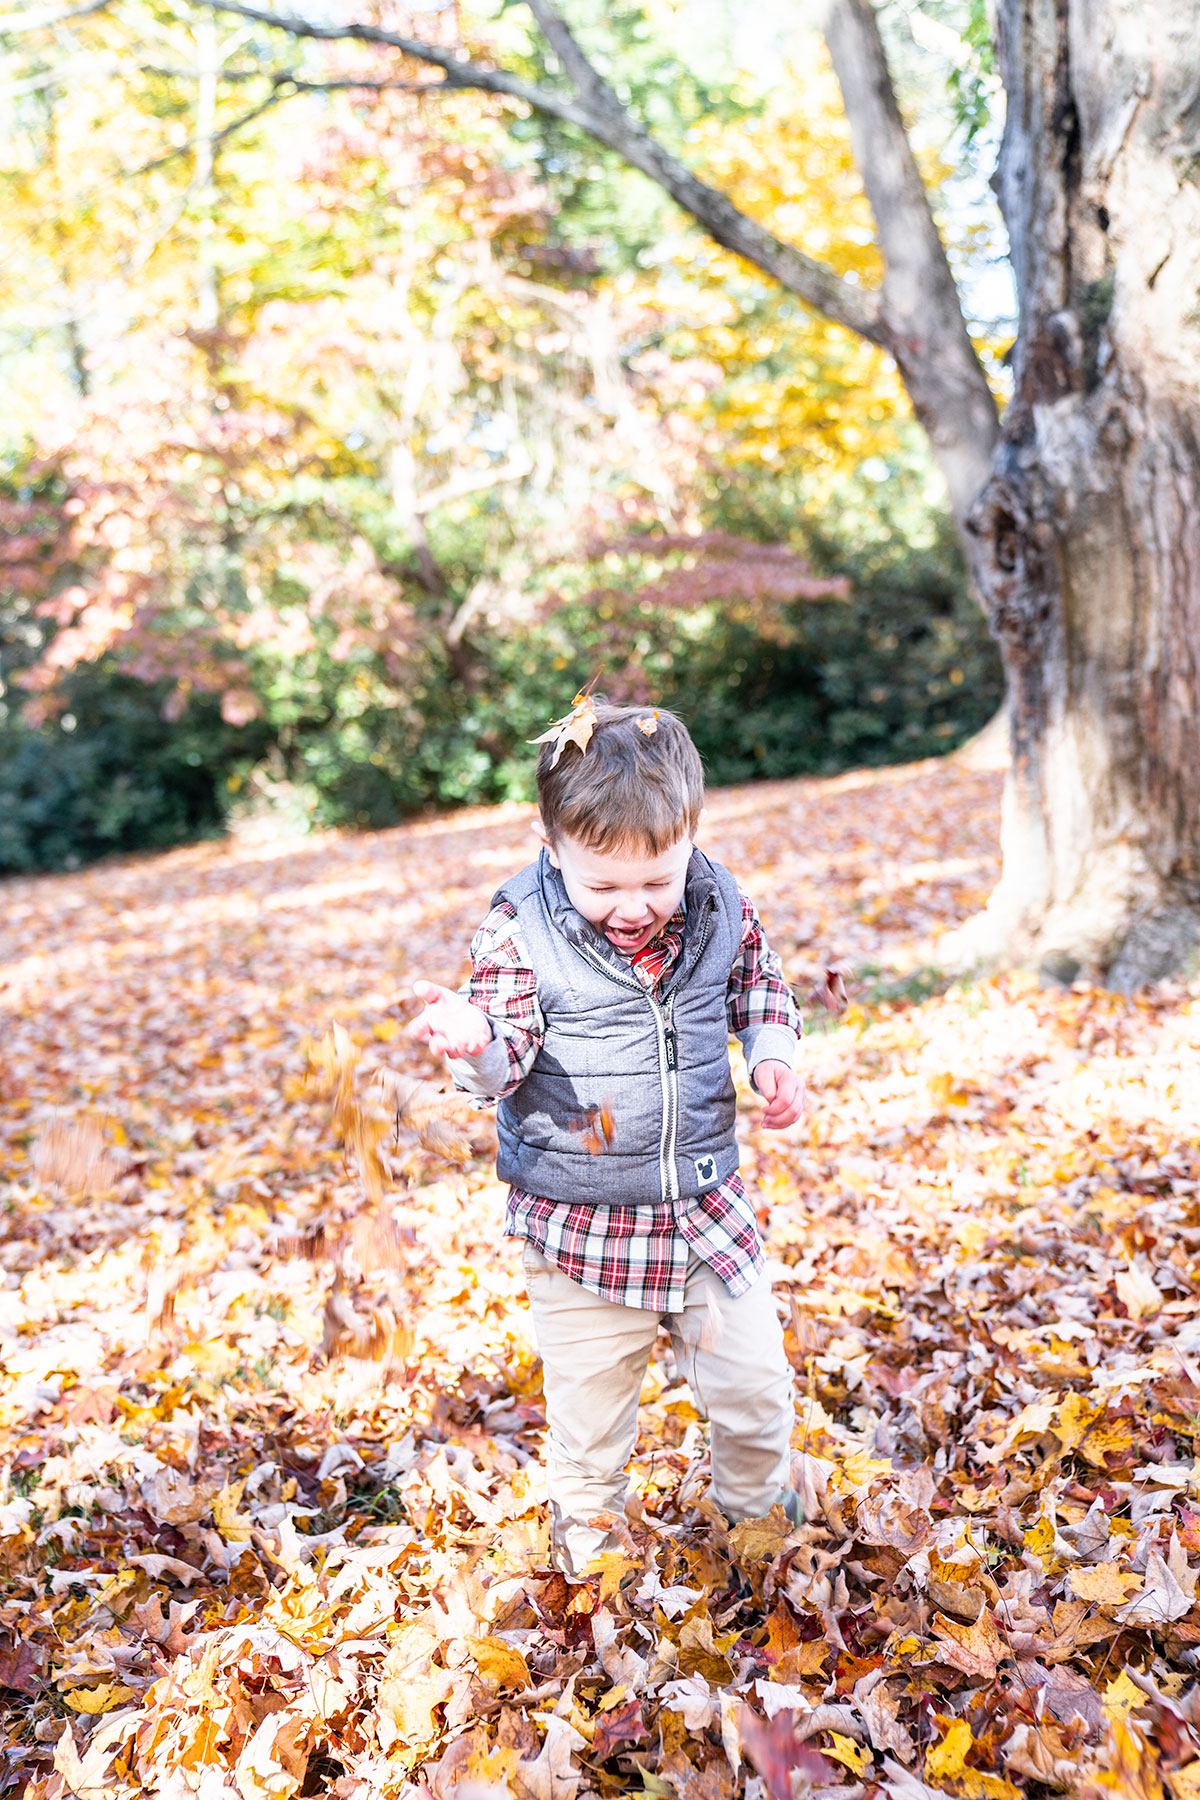 Trevor-with-Fall-Leaves-Maudslay-Newburyport